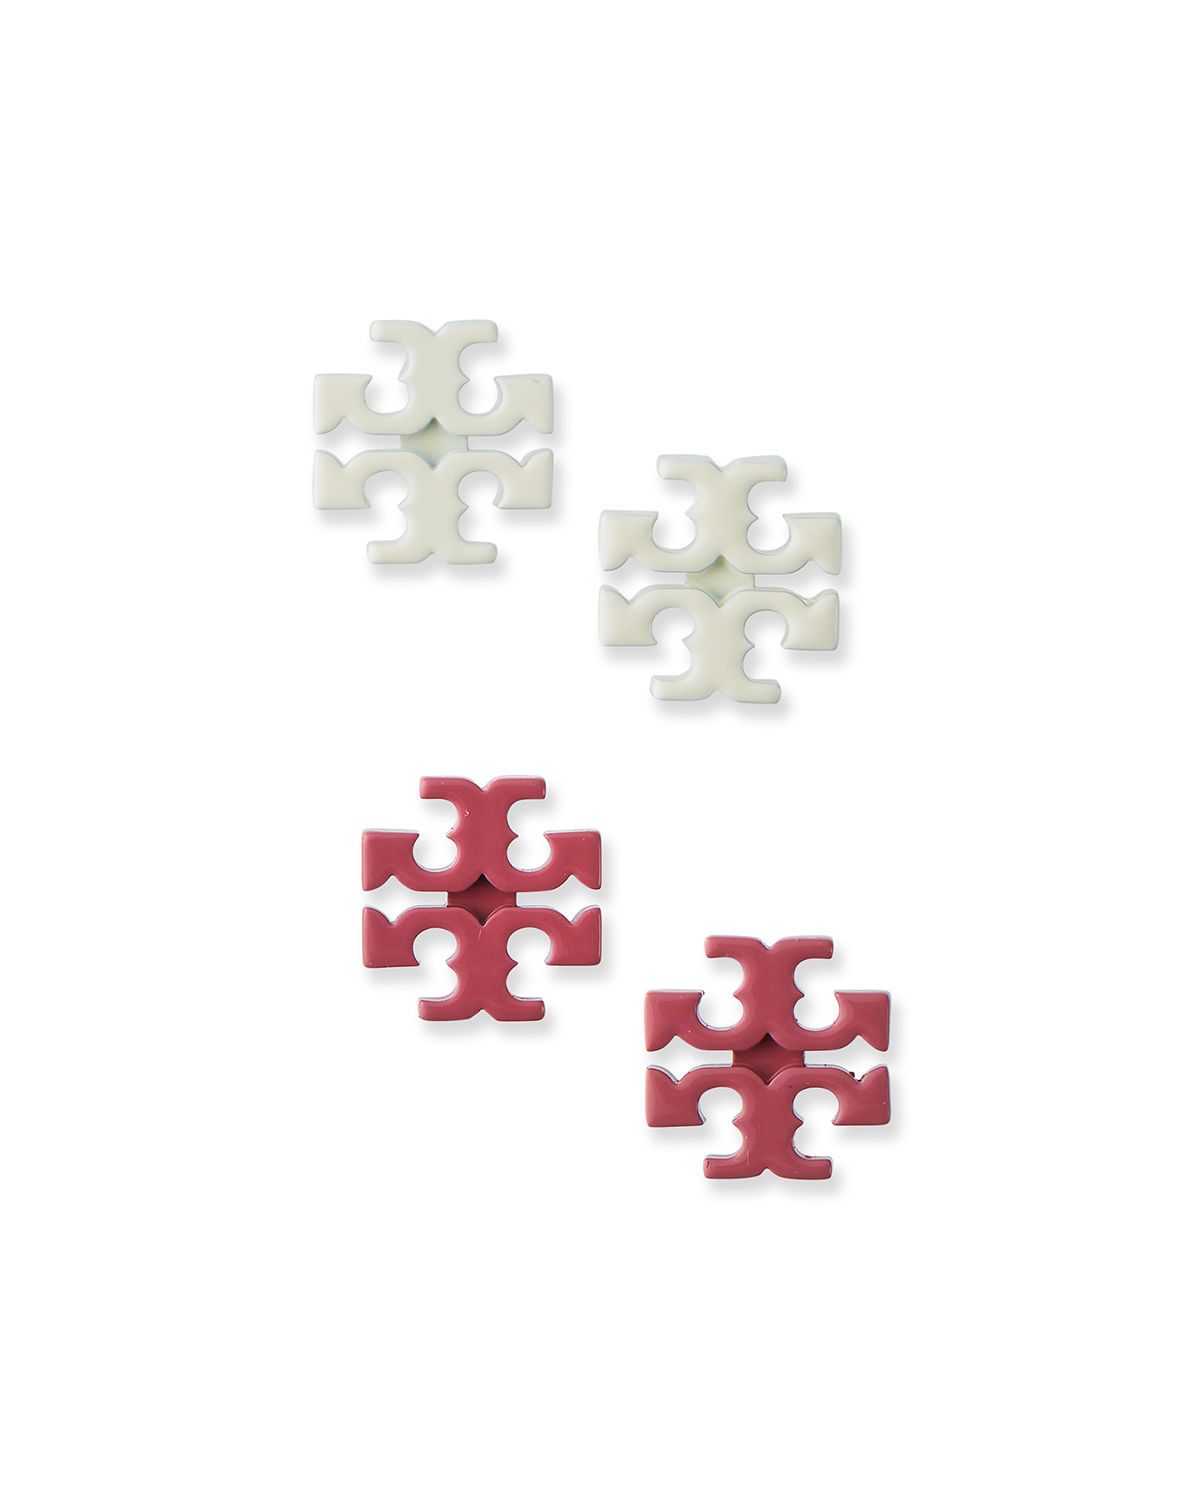 Tory Burch KIRA POWDER COATED STUD EARRINGS, SET OF 2